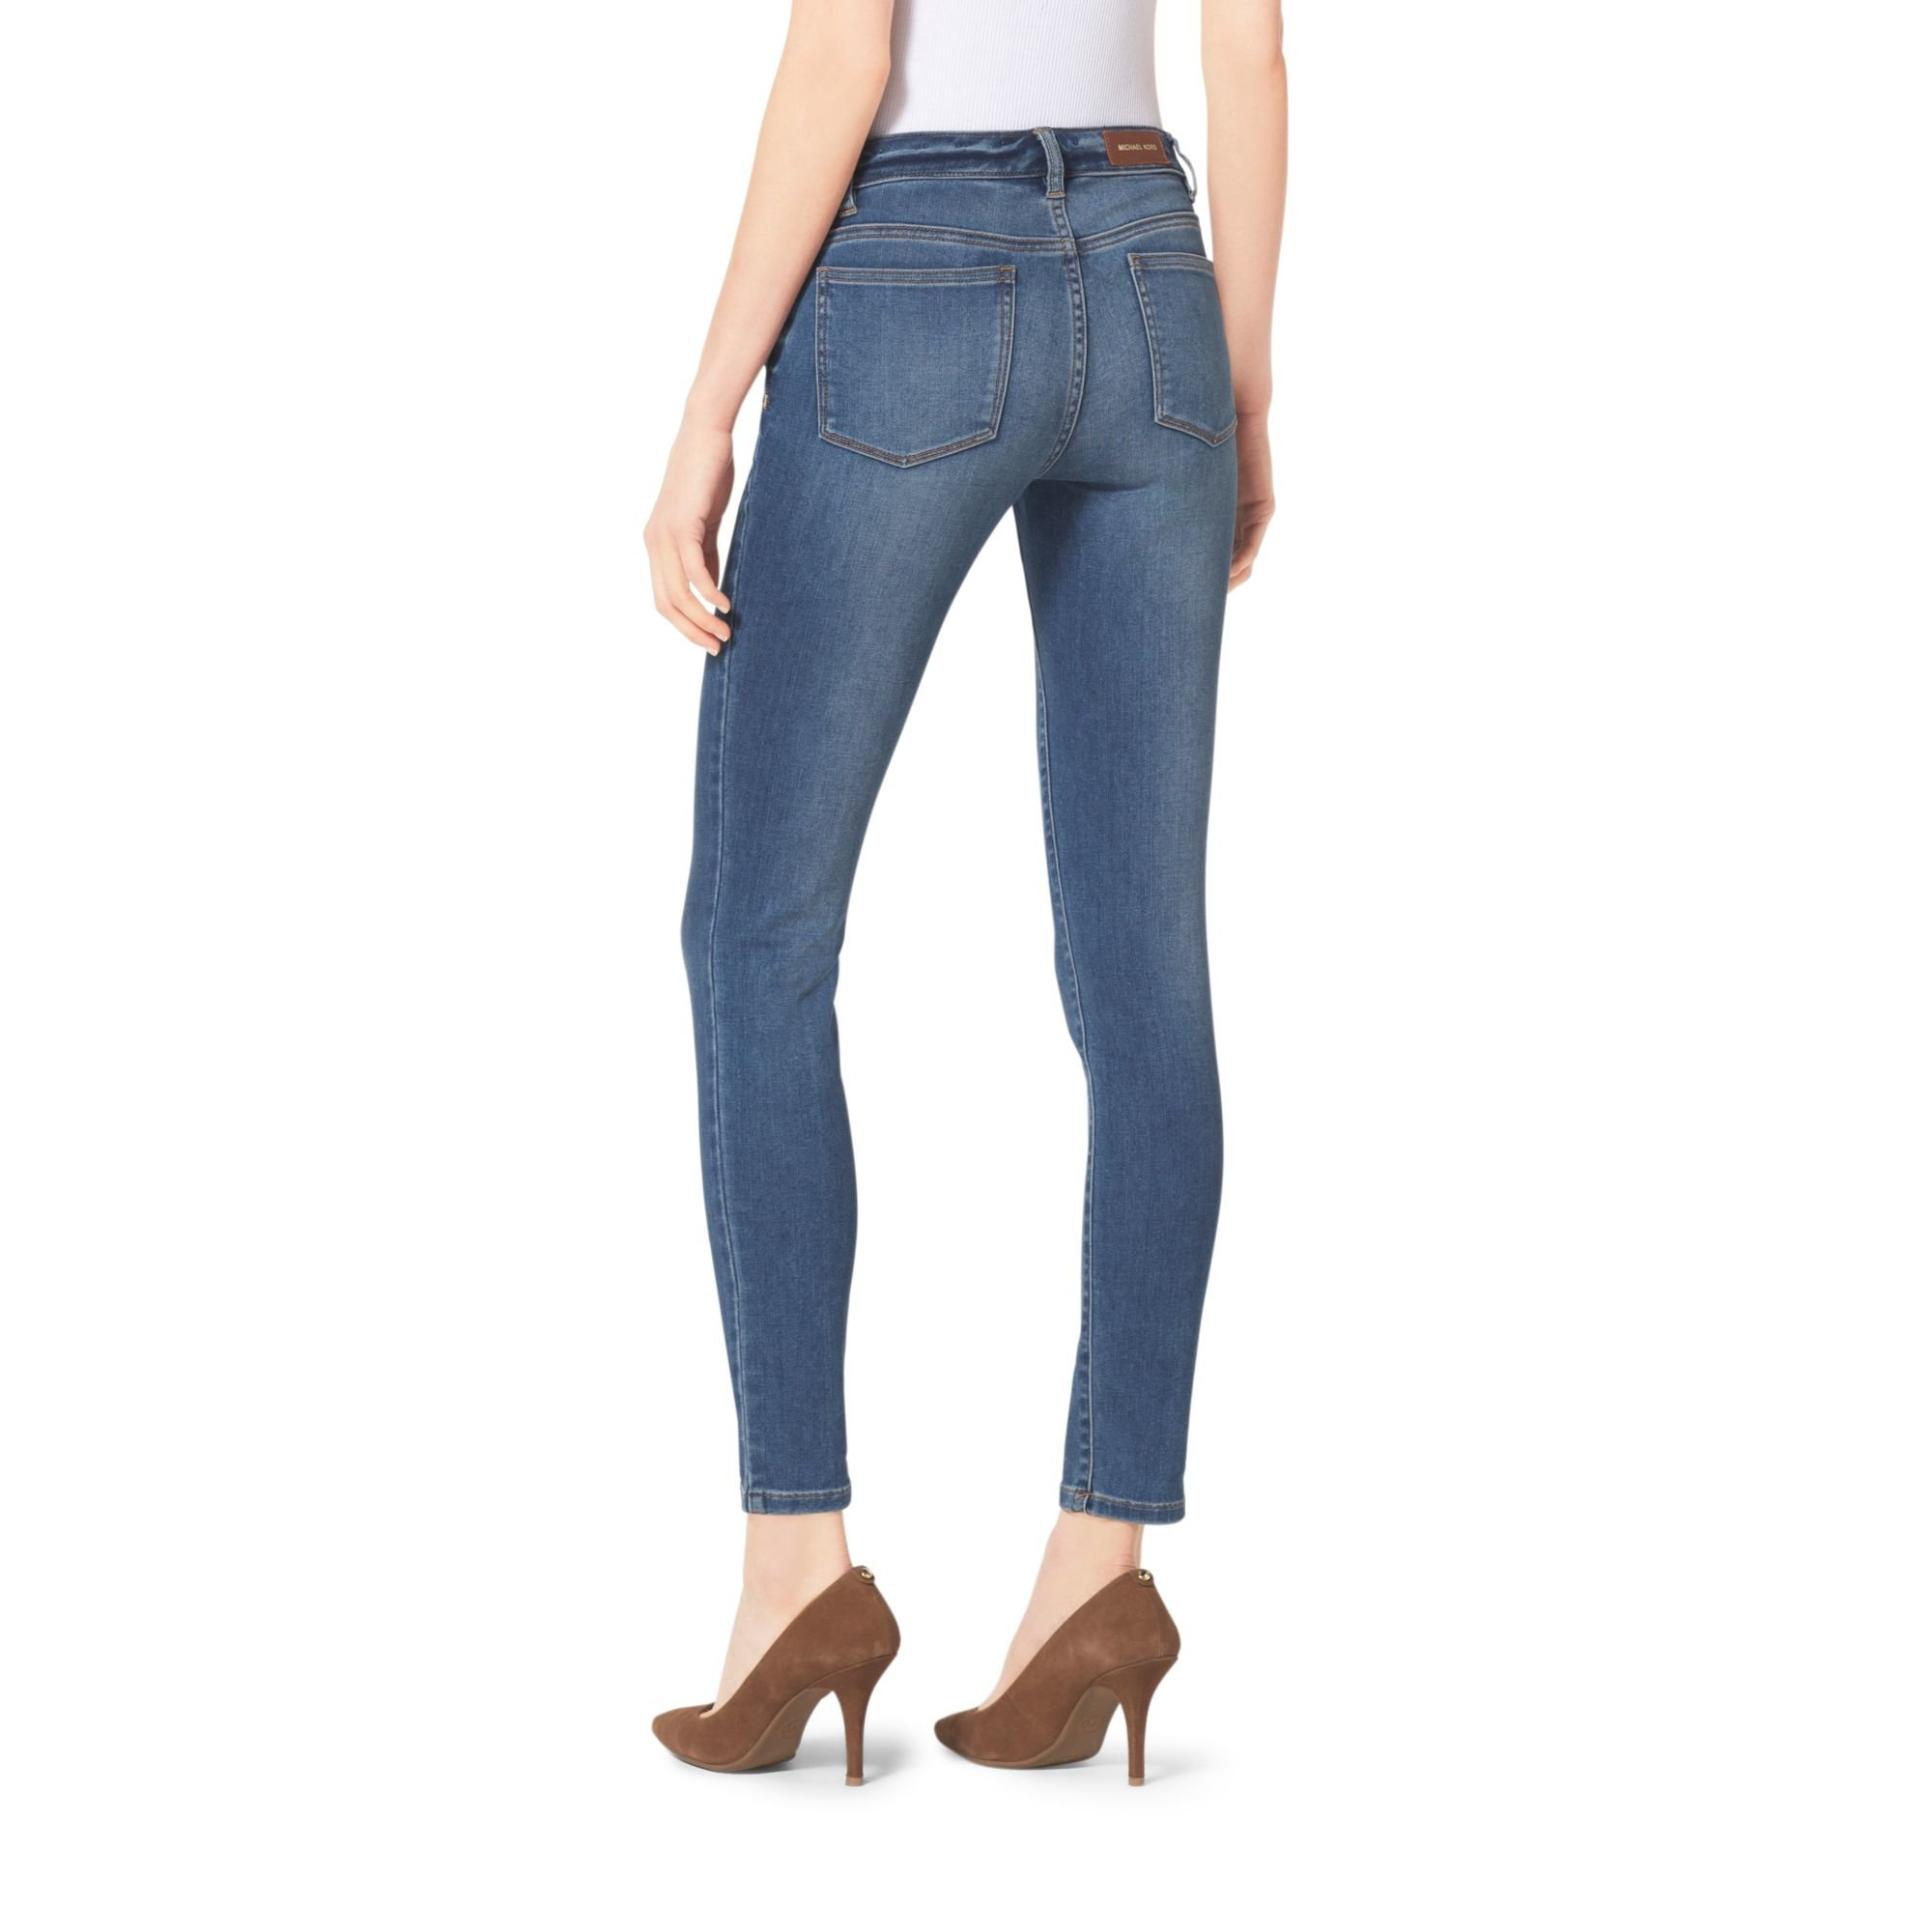 michael kors cropped skinny jeans in blue lyst. Black Bedroom Furniture Sets. Home Design Ideas